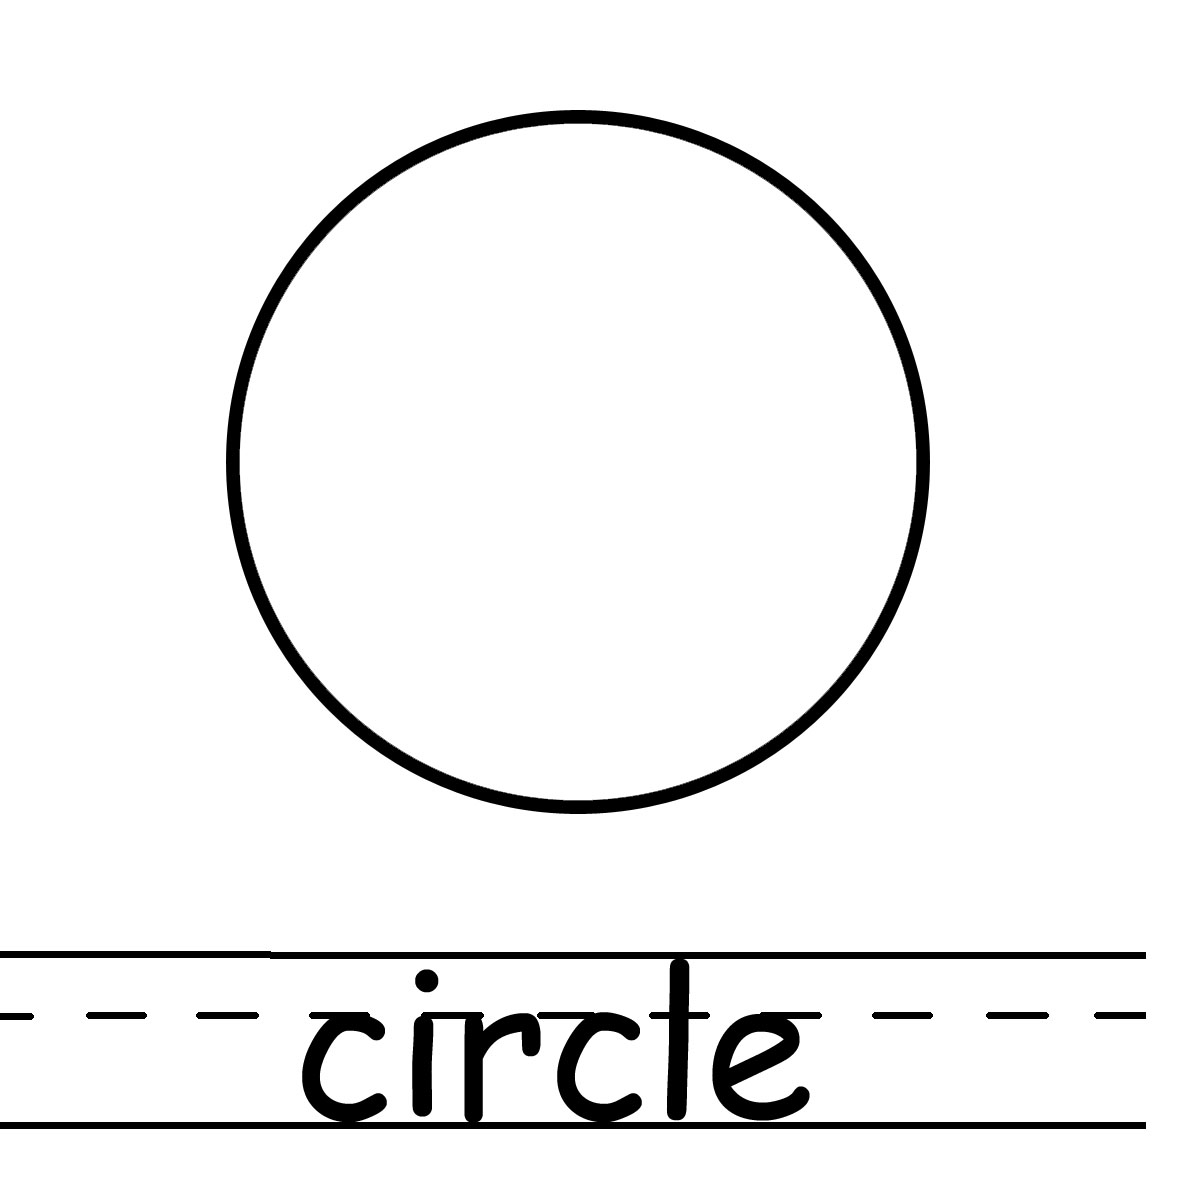 Circle Outline Various Sizes To Print